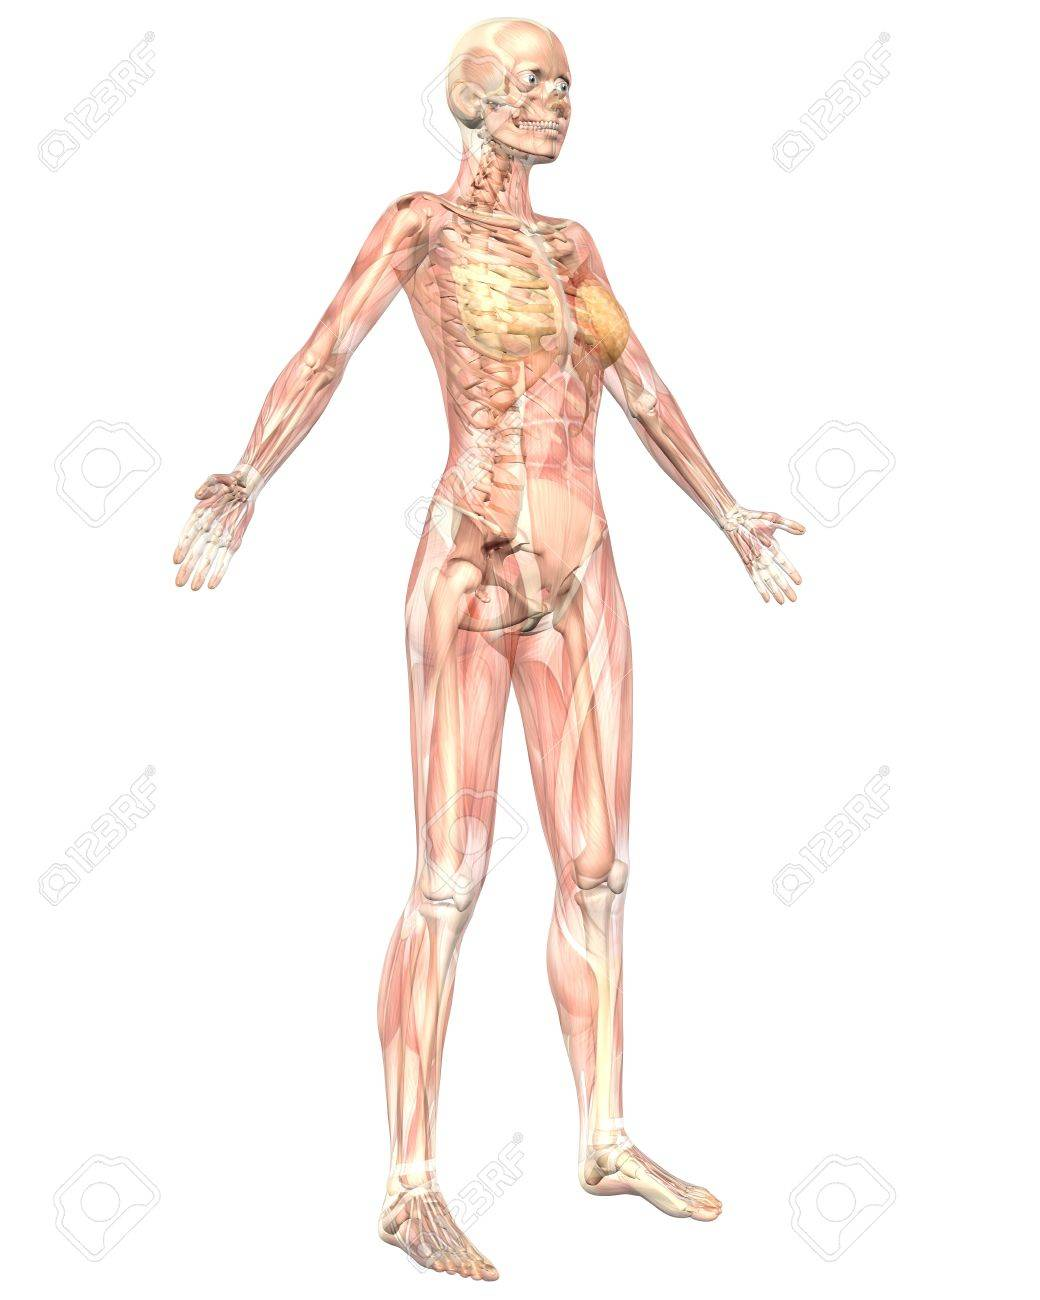 A Illustration Of The Angled Front View Of The Female Muscular ...